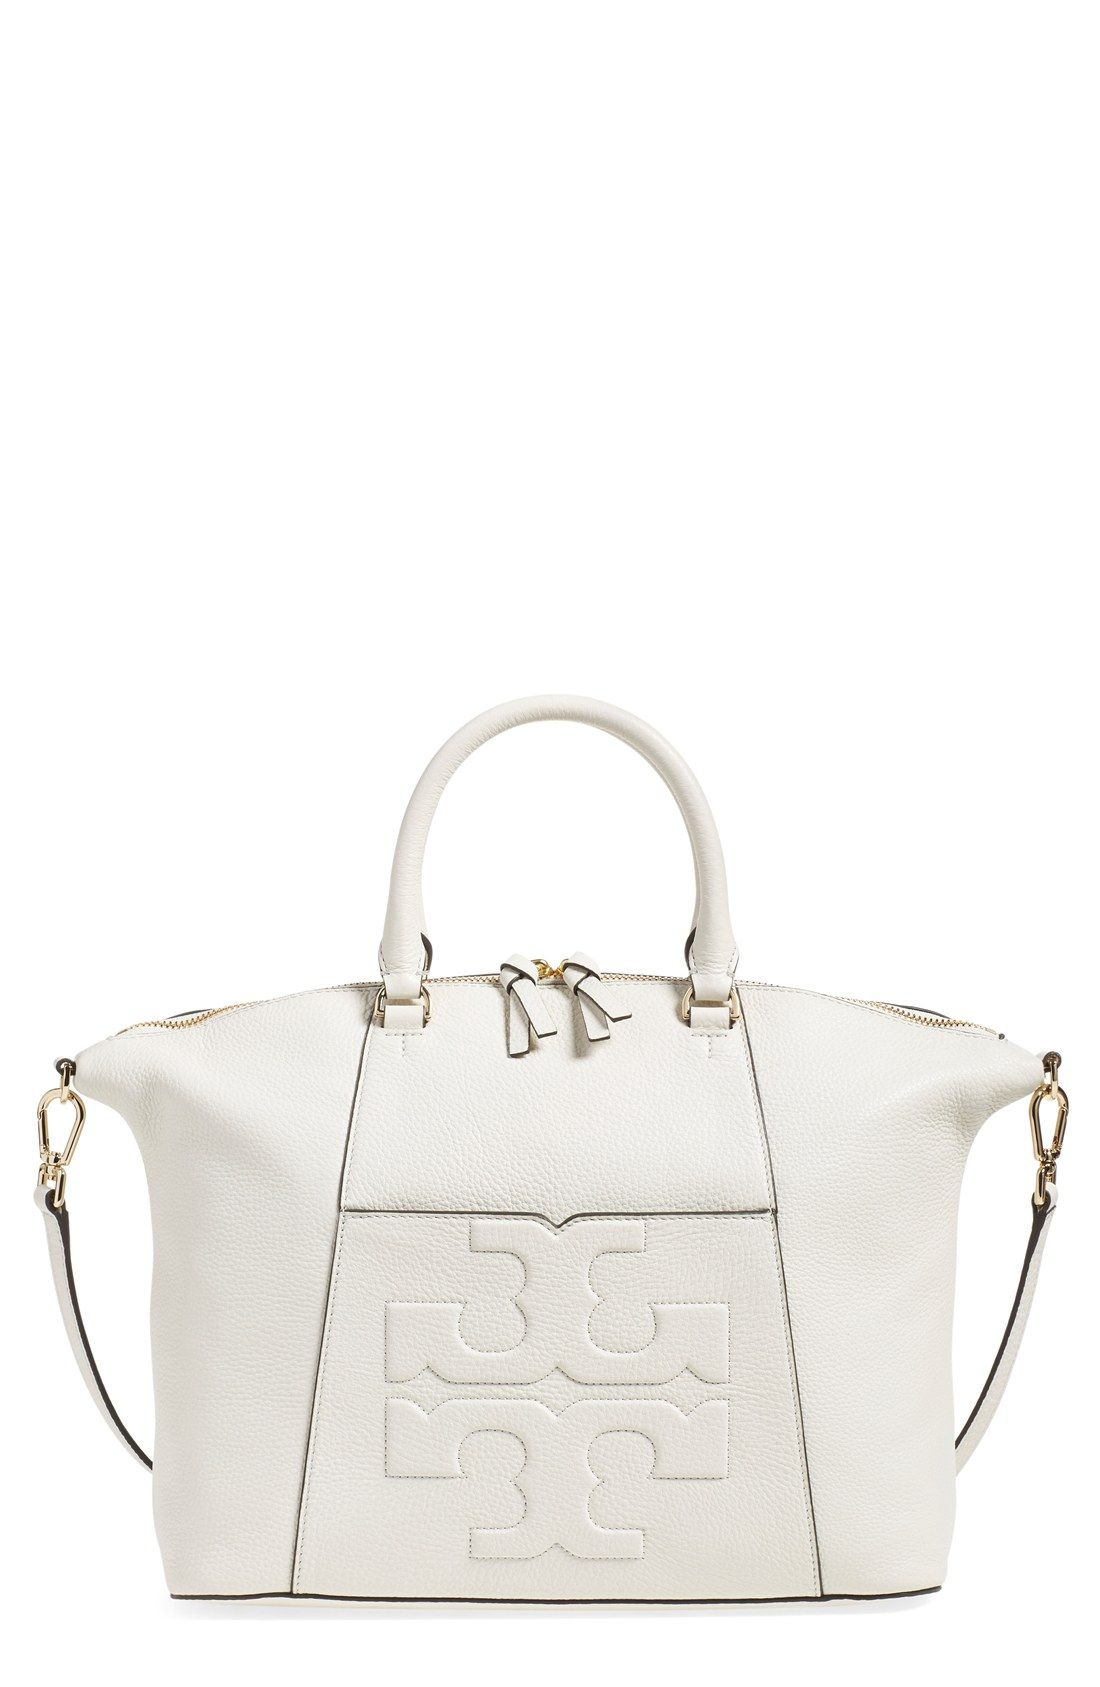 13aad6310c7b Adoring this slightly slouchy satchel from Tory Burch. In crisp white  leather